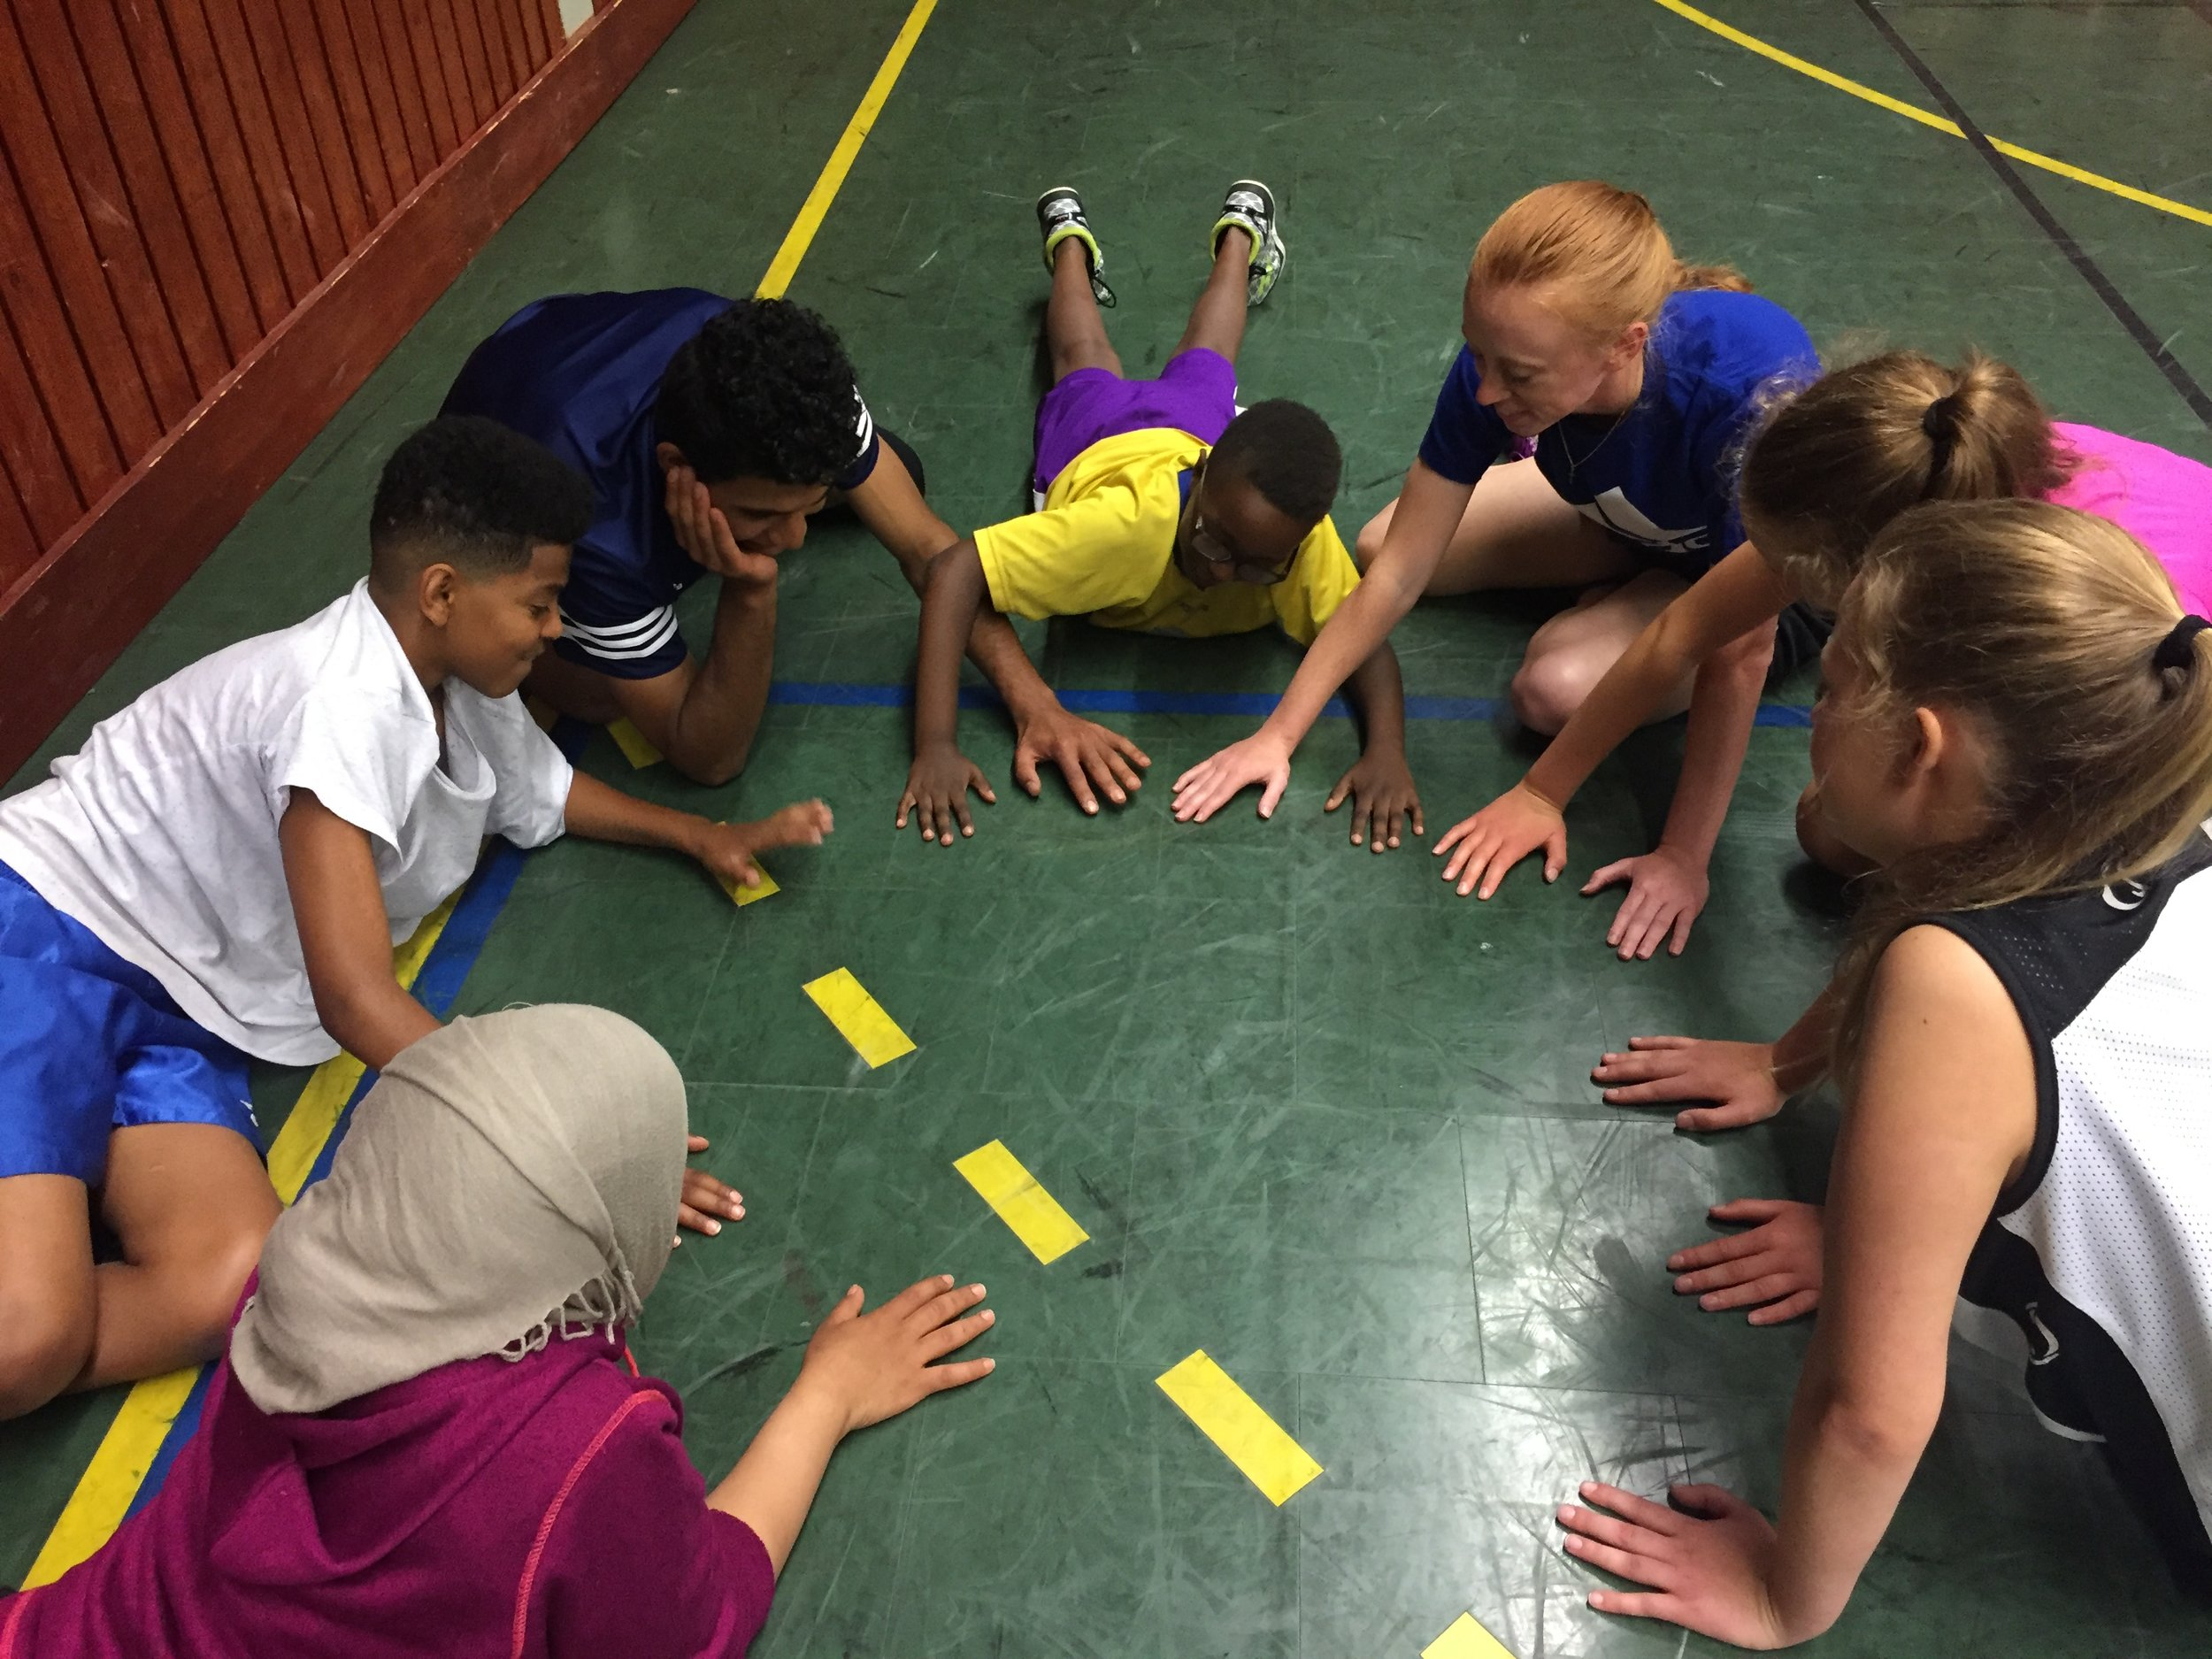 Building relationships with our campers through playing a fun game with them at our kids basketball camp in Sweden.